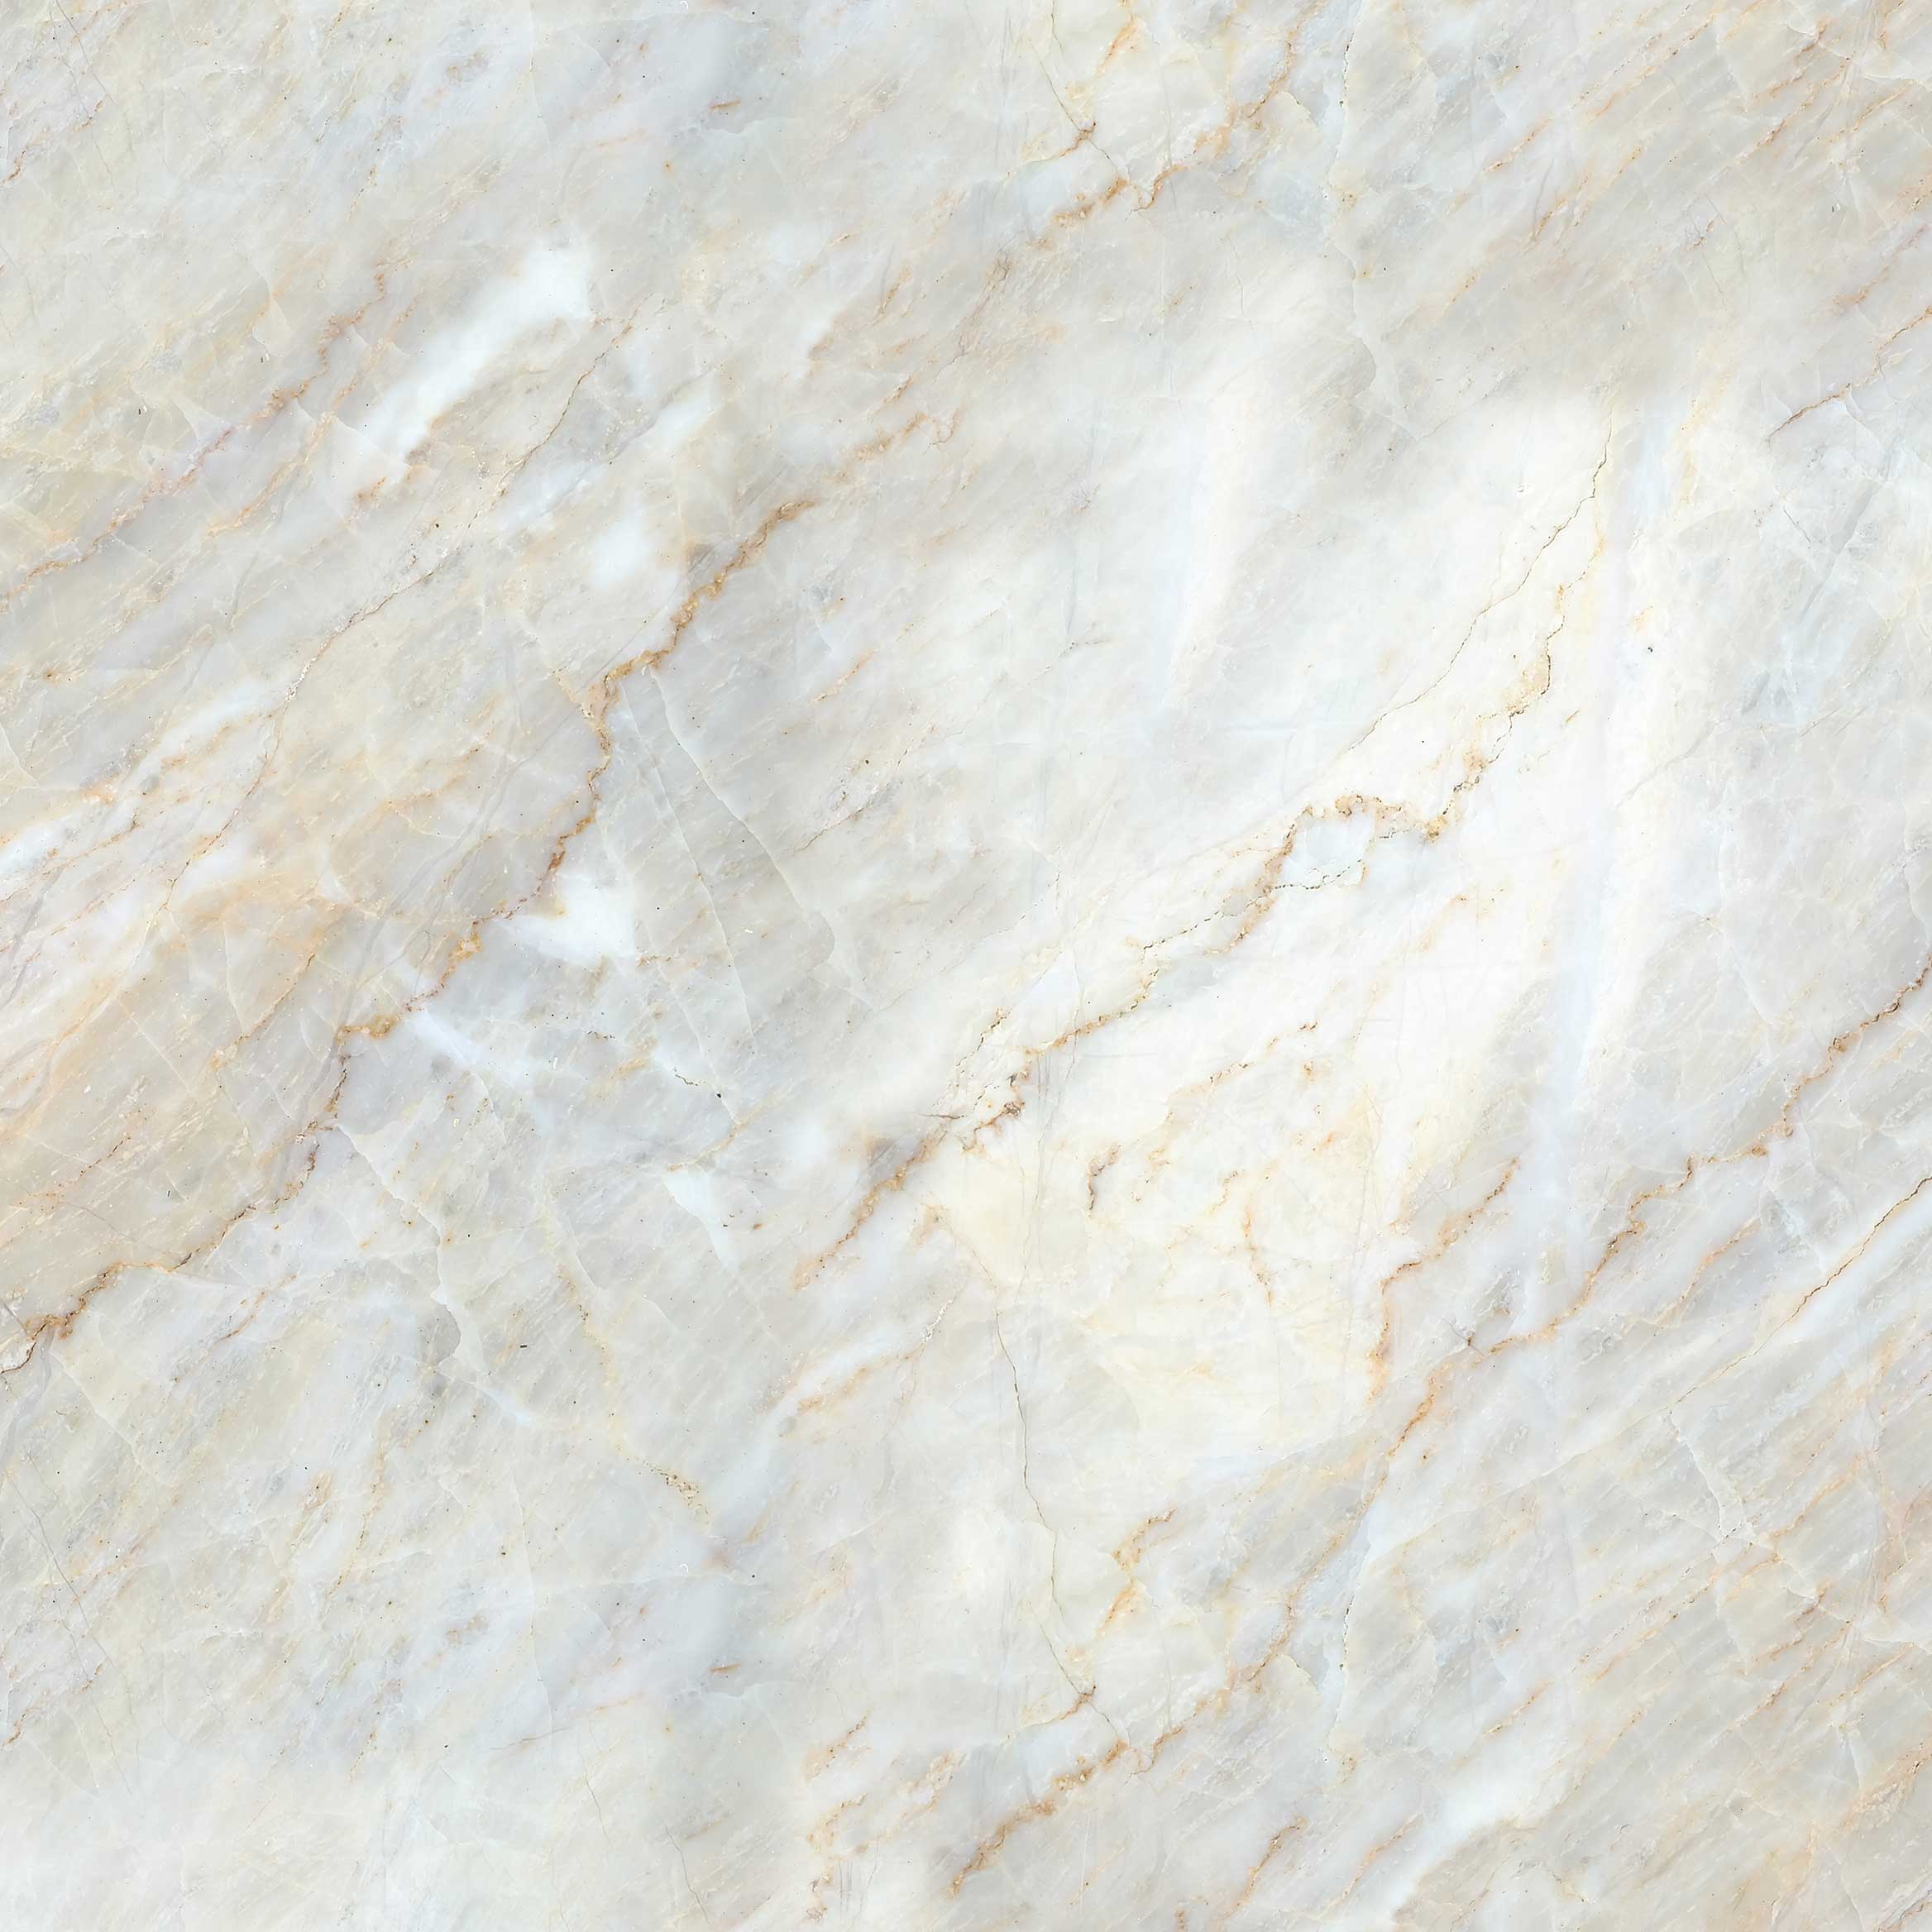 Cool Wallpaper Marble Text - WarmMarble-2336  Photograph_67726.jpg